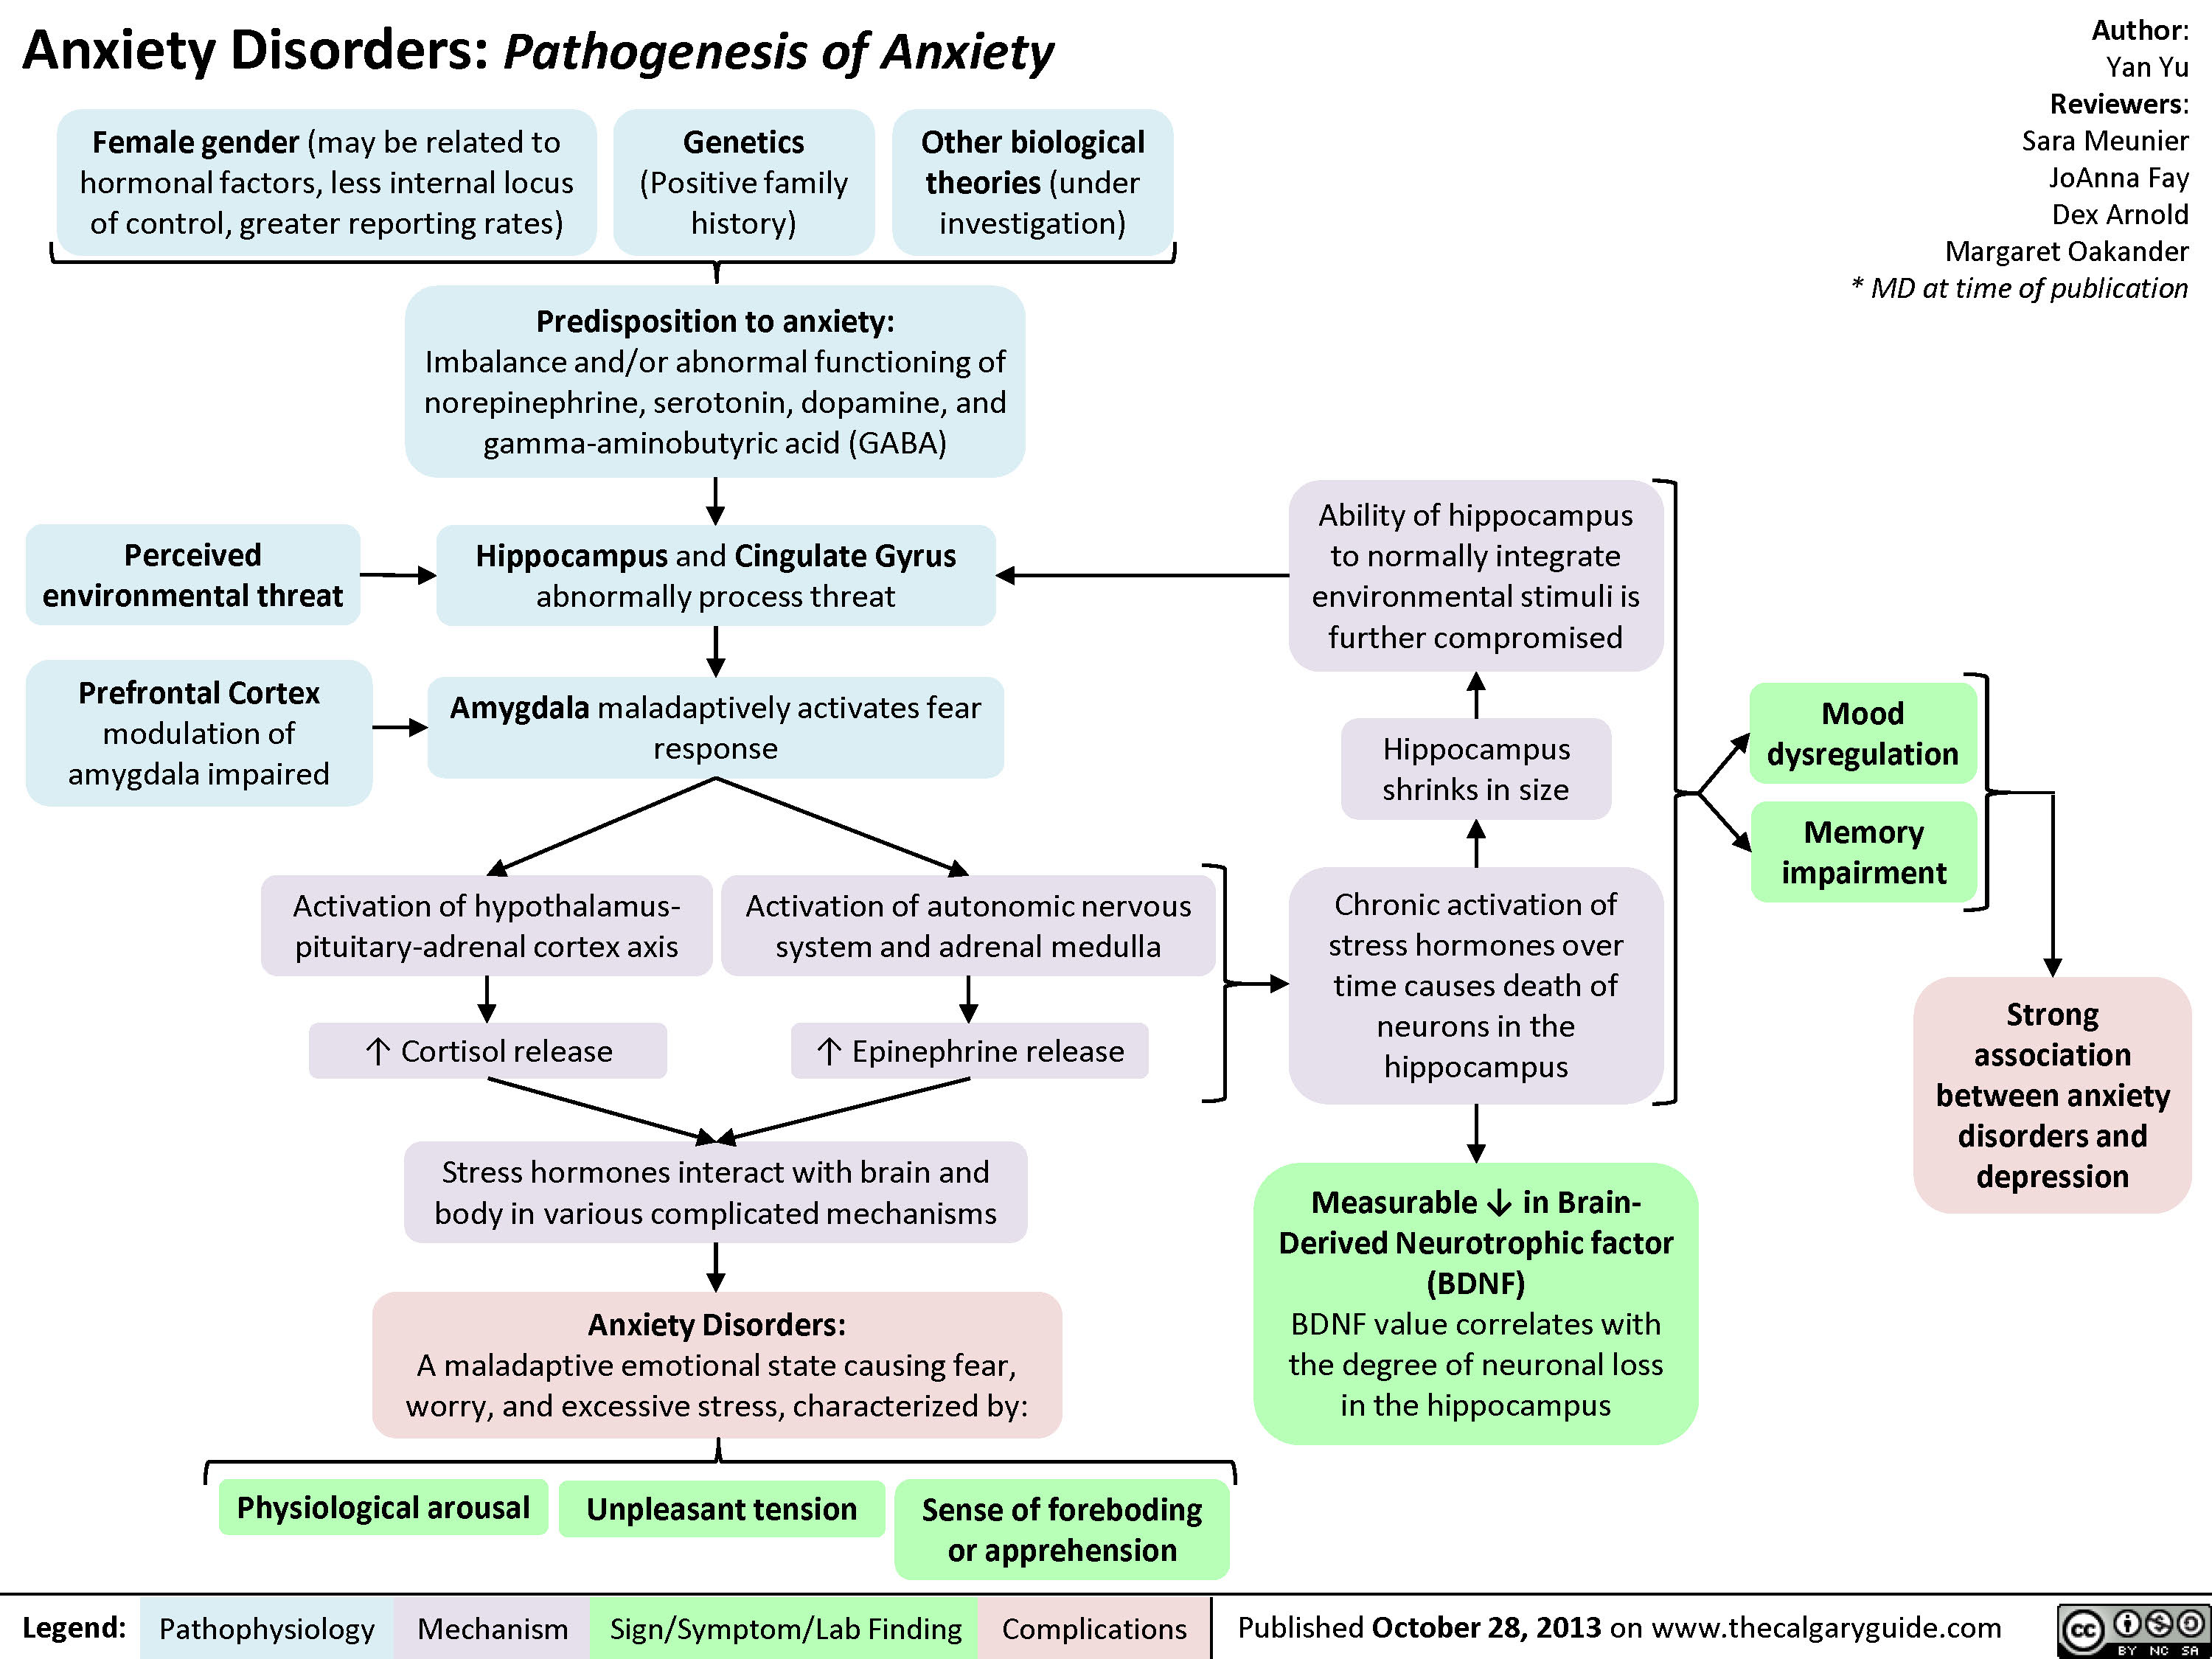 Pathogenesis of Anxiety Disorders